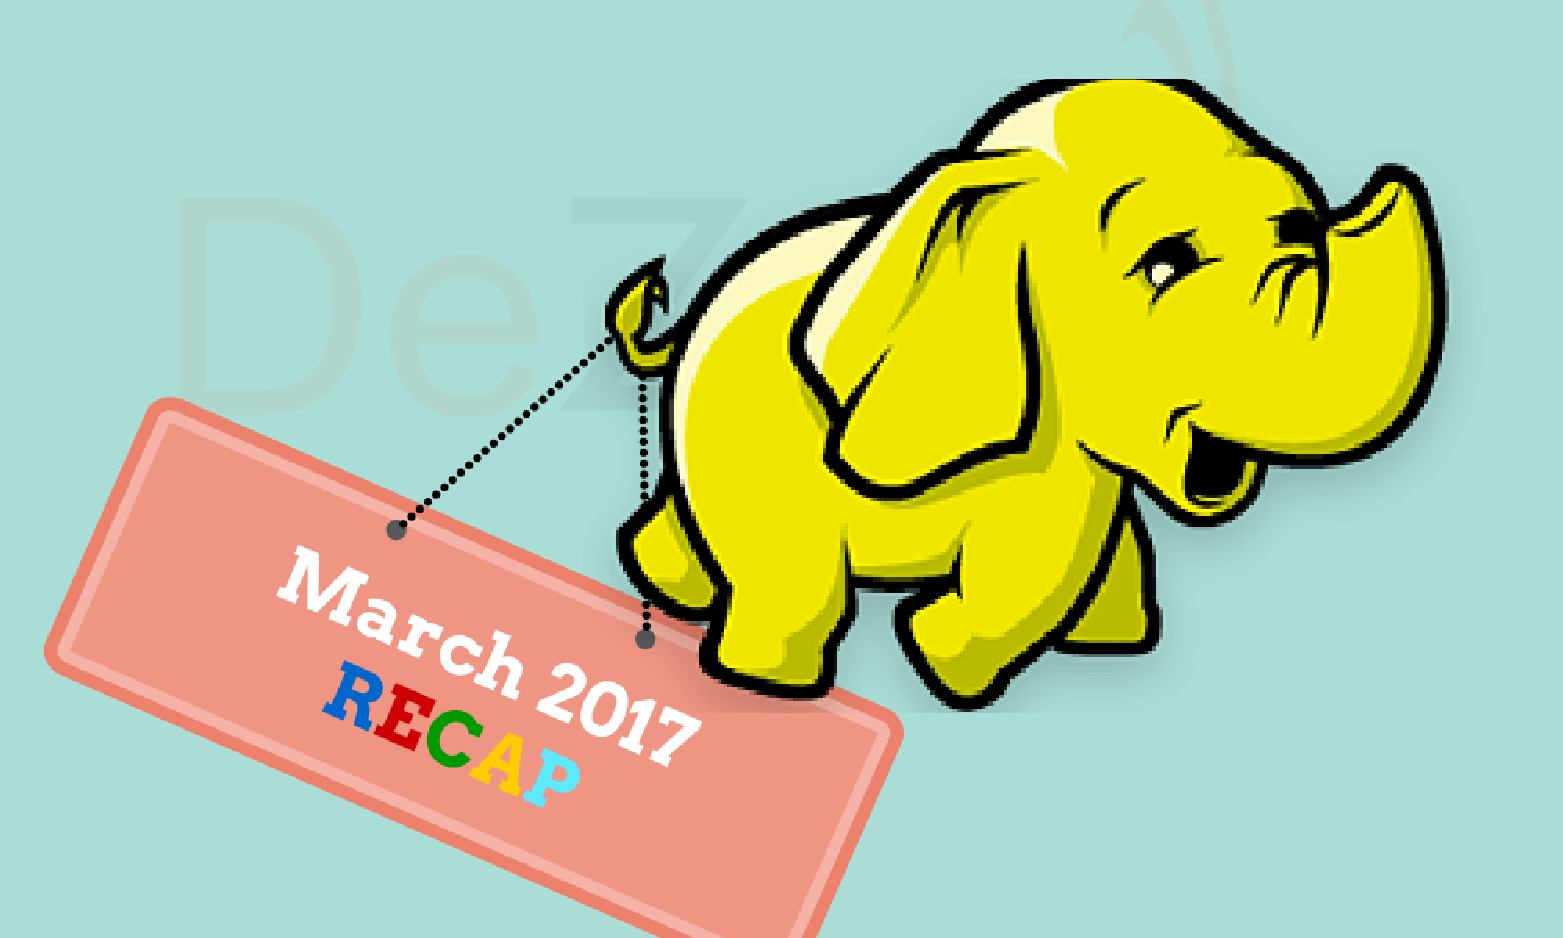 Hadoop News for March 2017